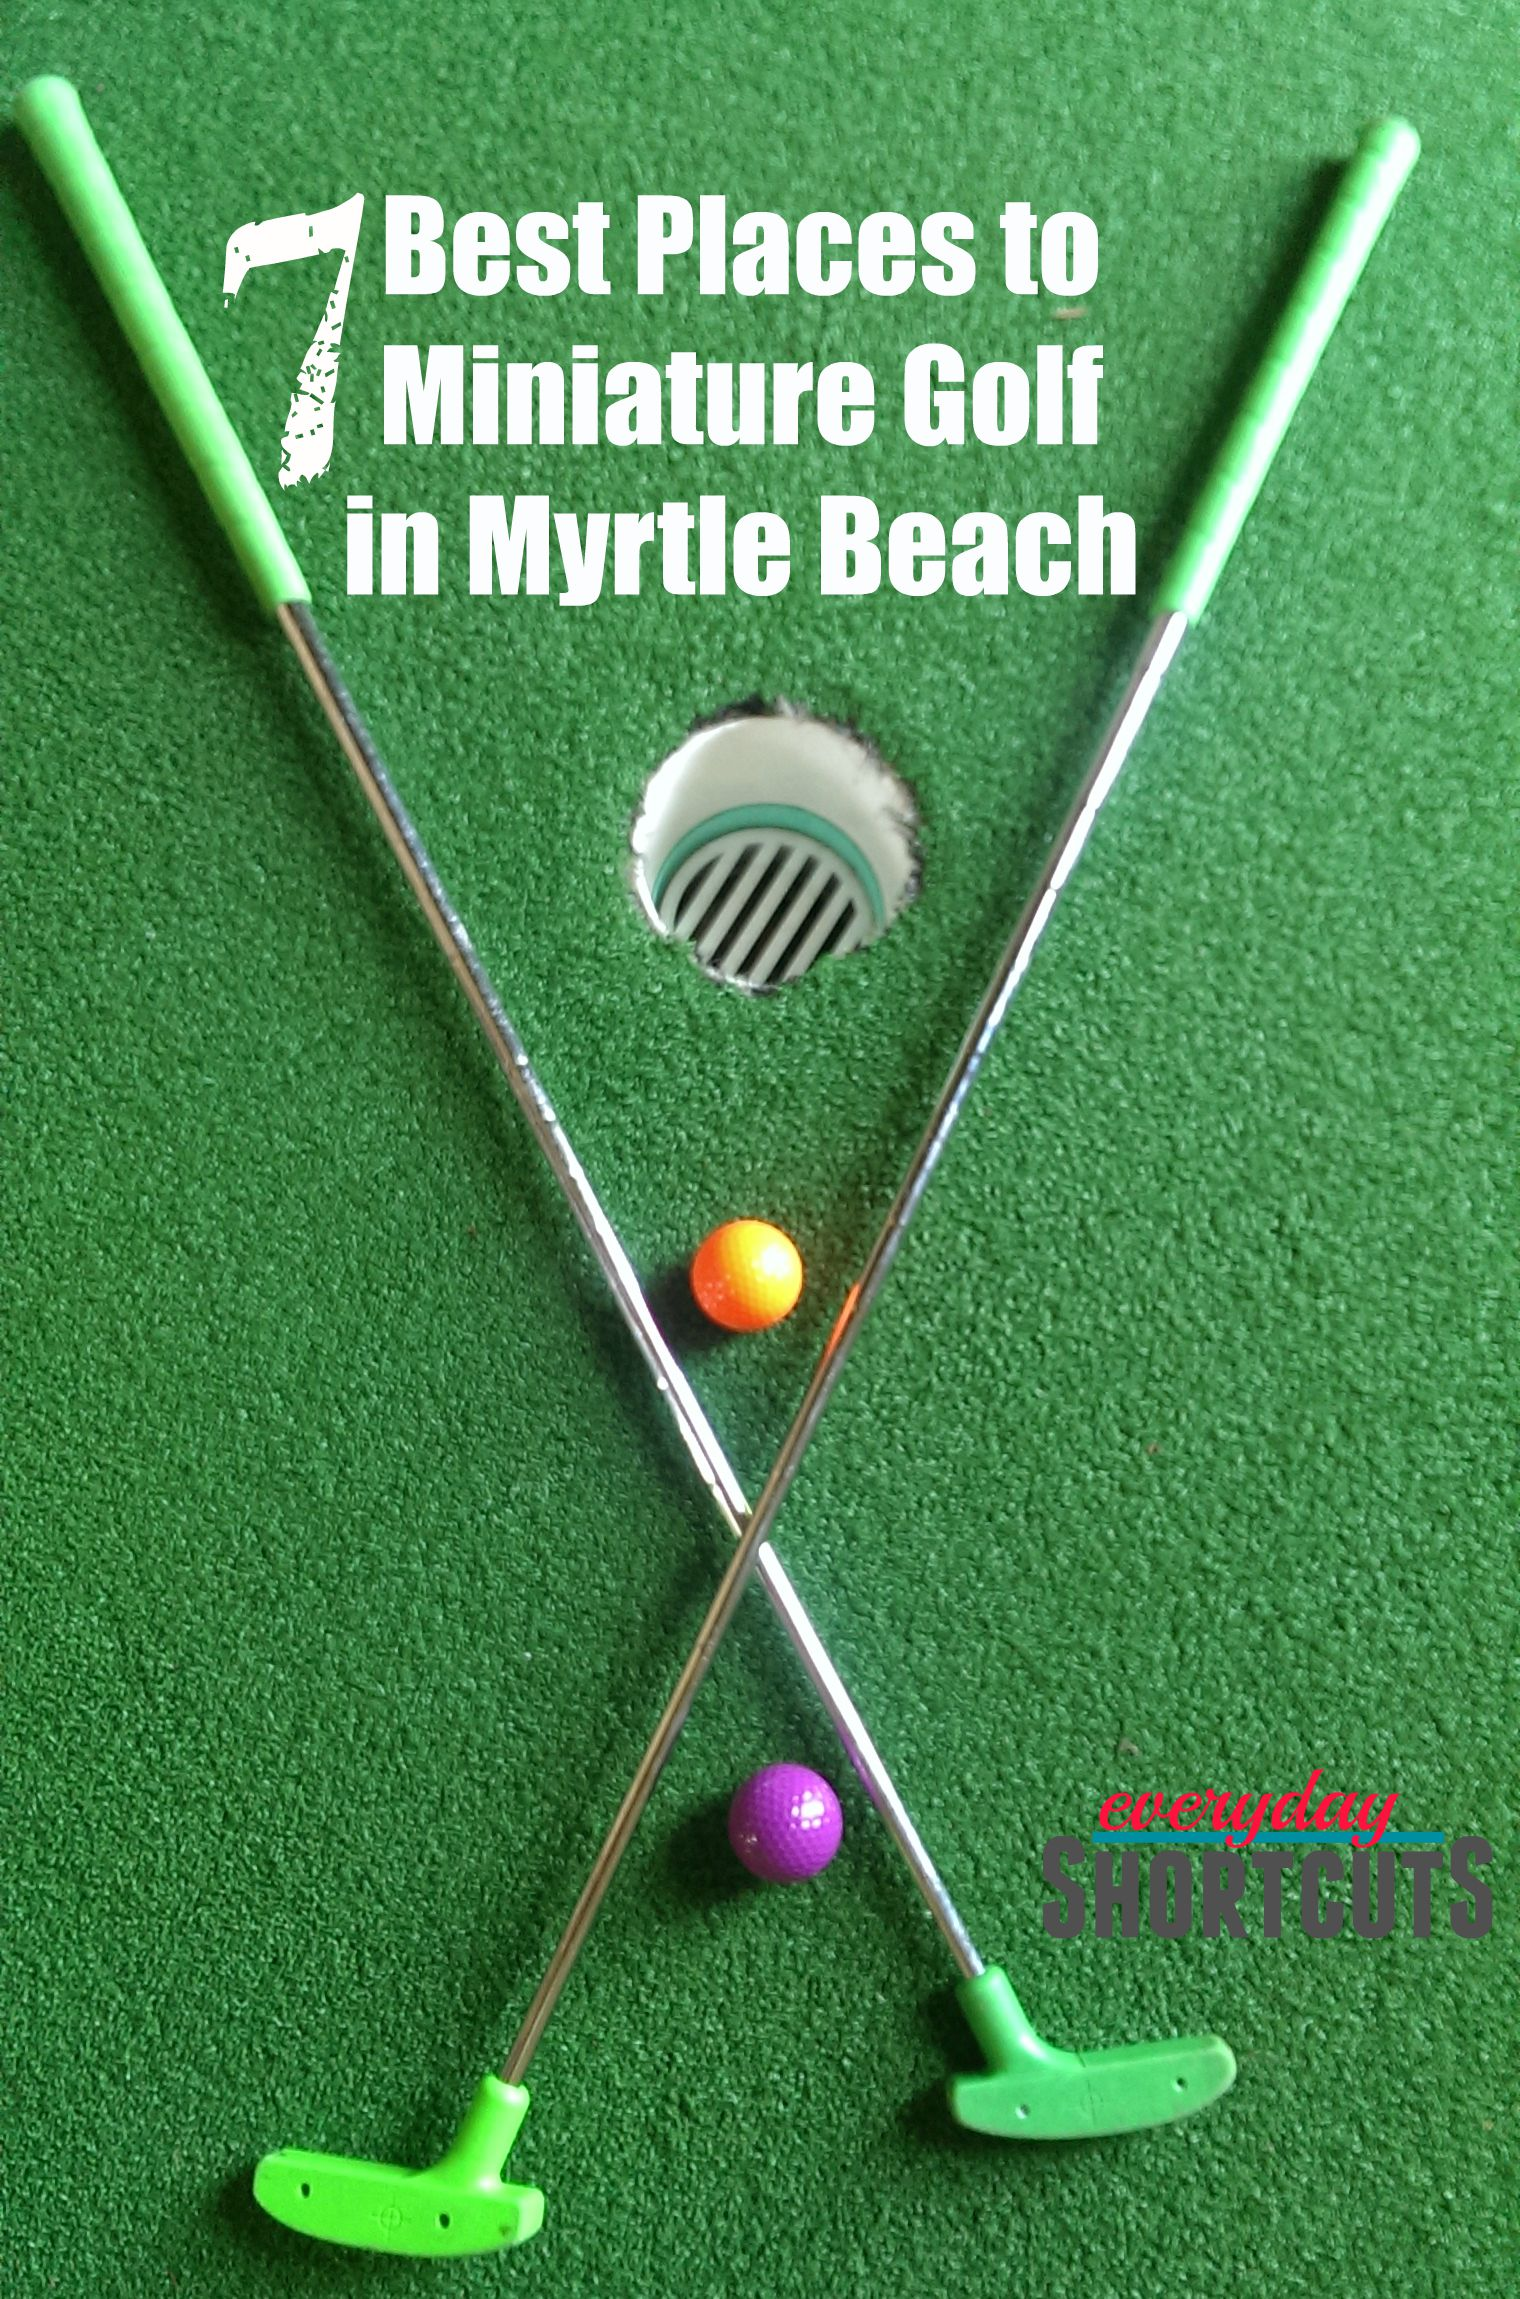 best places to miniature golf in myrtle beach